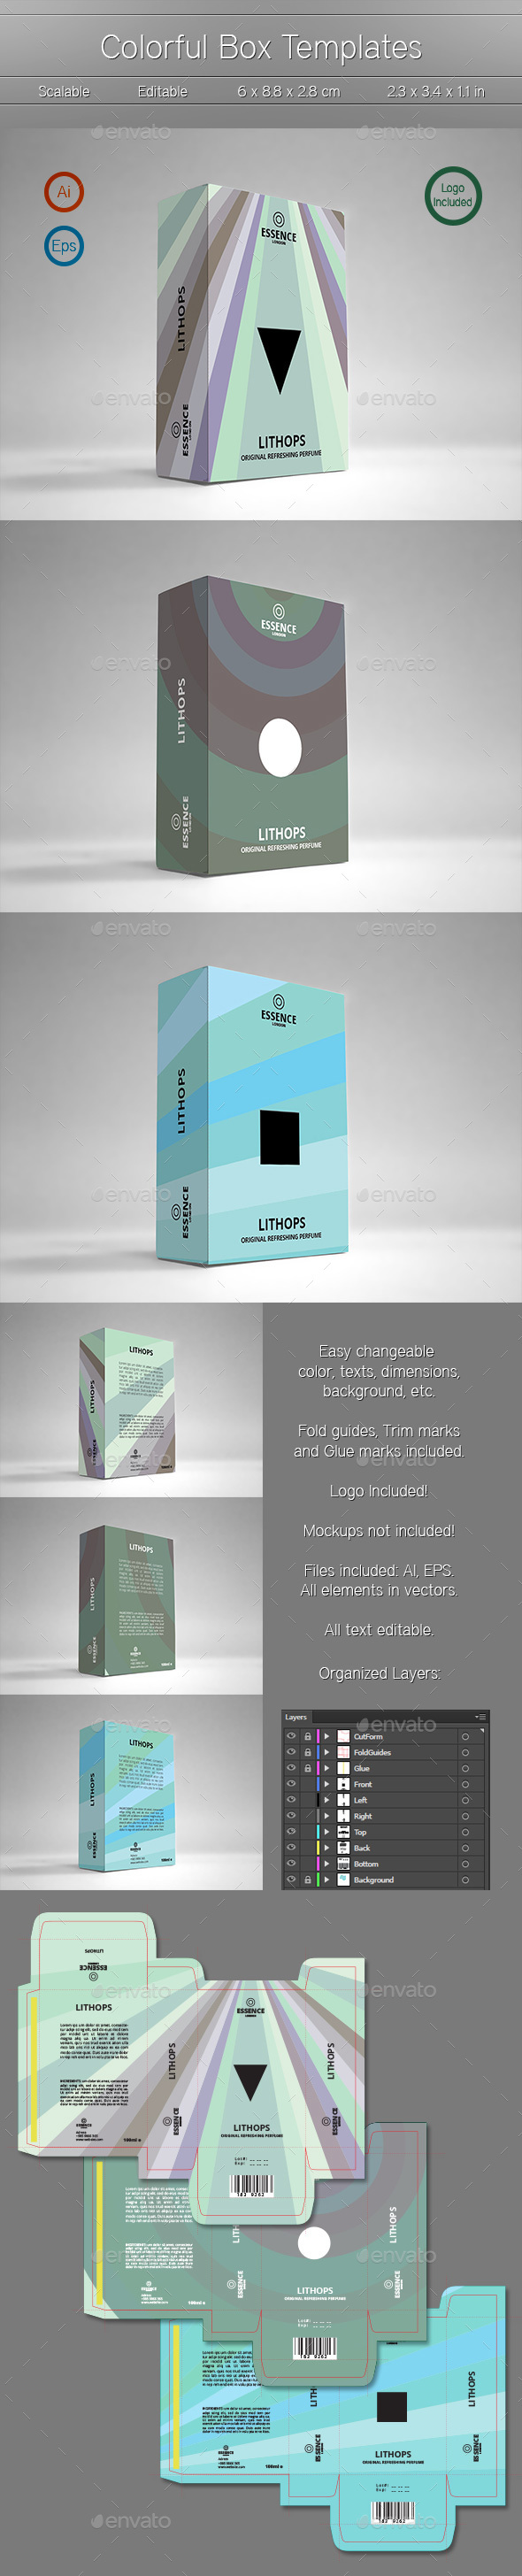 3 Colorful Box Templates - Packaging Print Templates